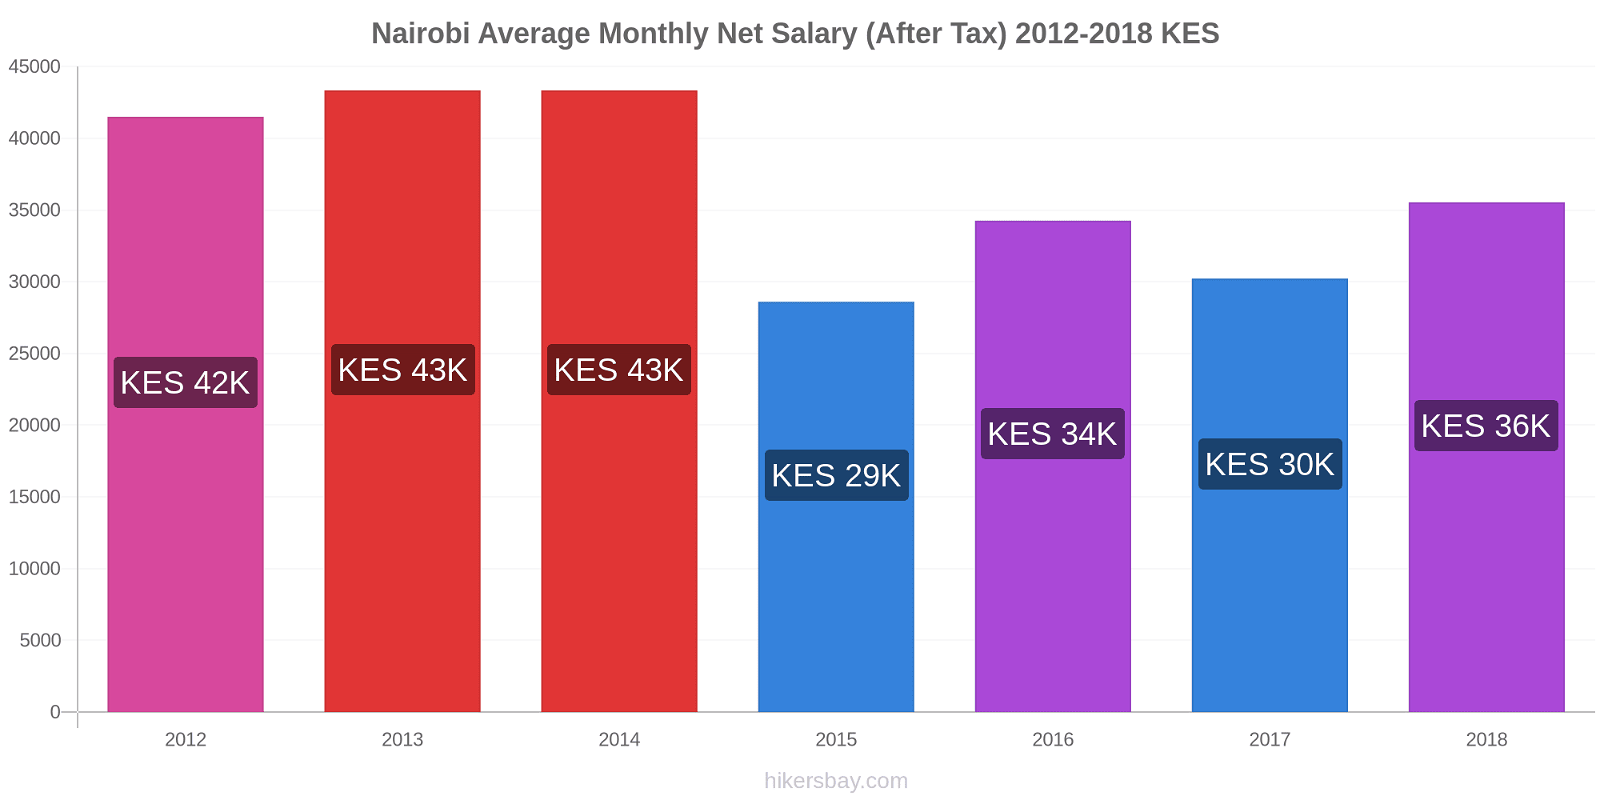 Nairobi price changes Average Monthly Net Salary (After Tax) hikersbay.com